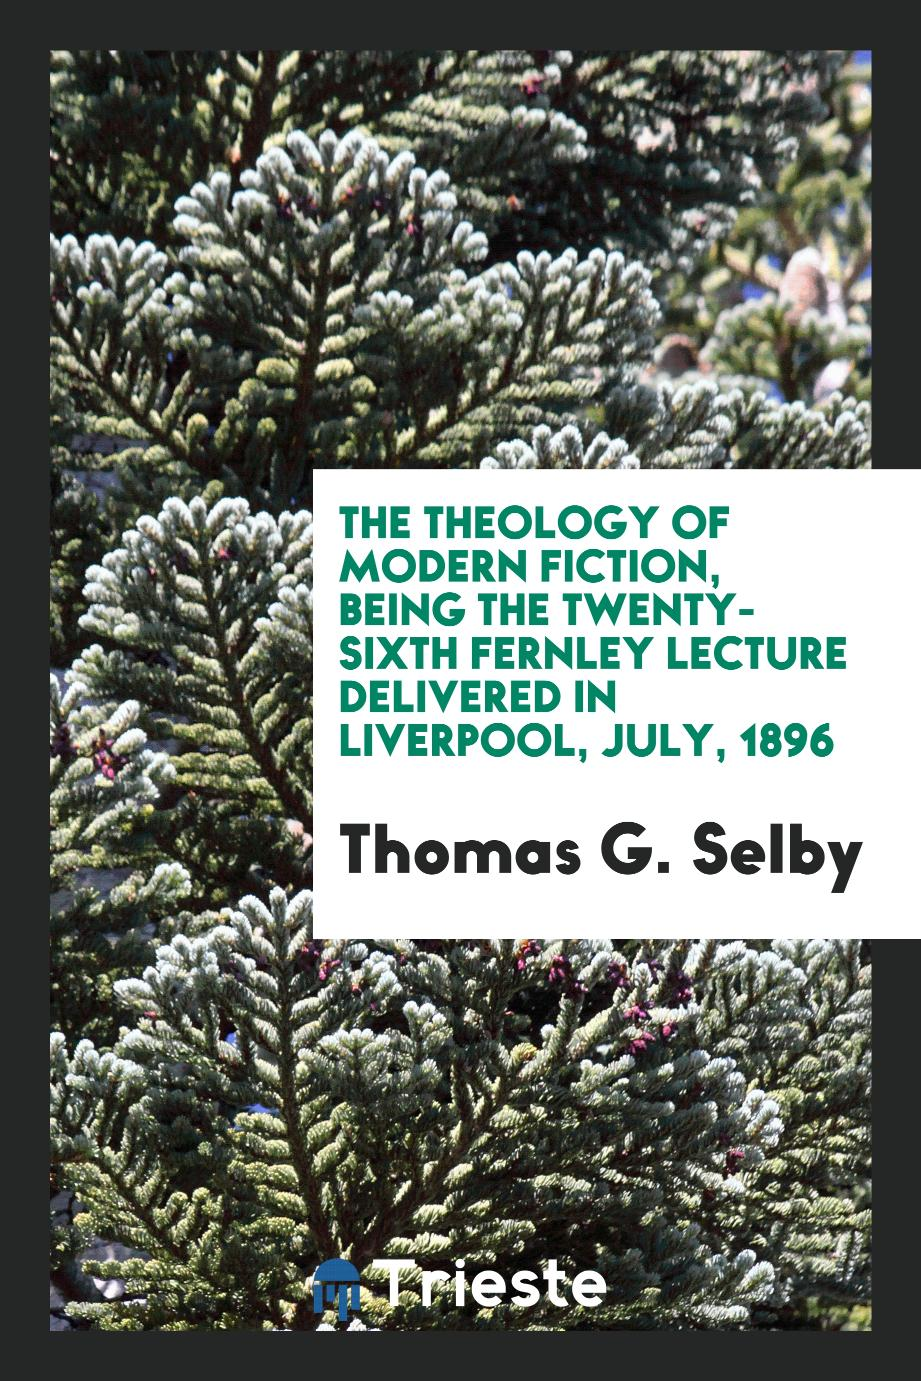 The theology of modern fiction, being the twenty-sixth Fernley lecture delivered in Liverpool, July, 1896